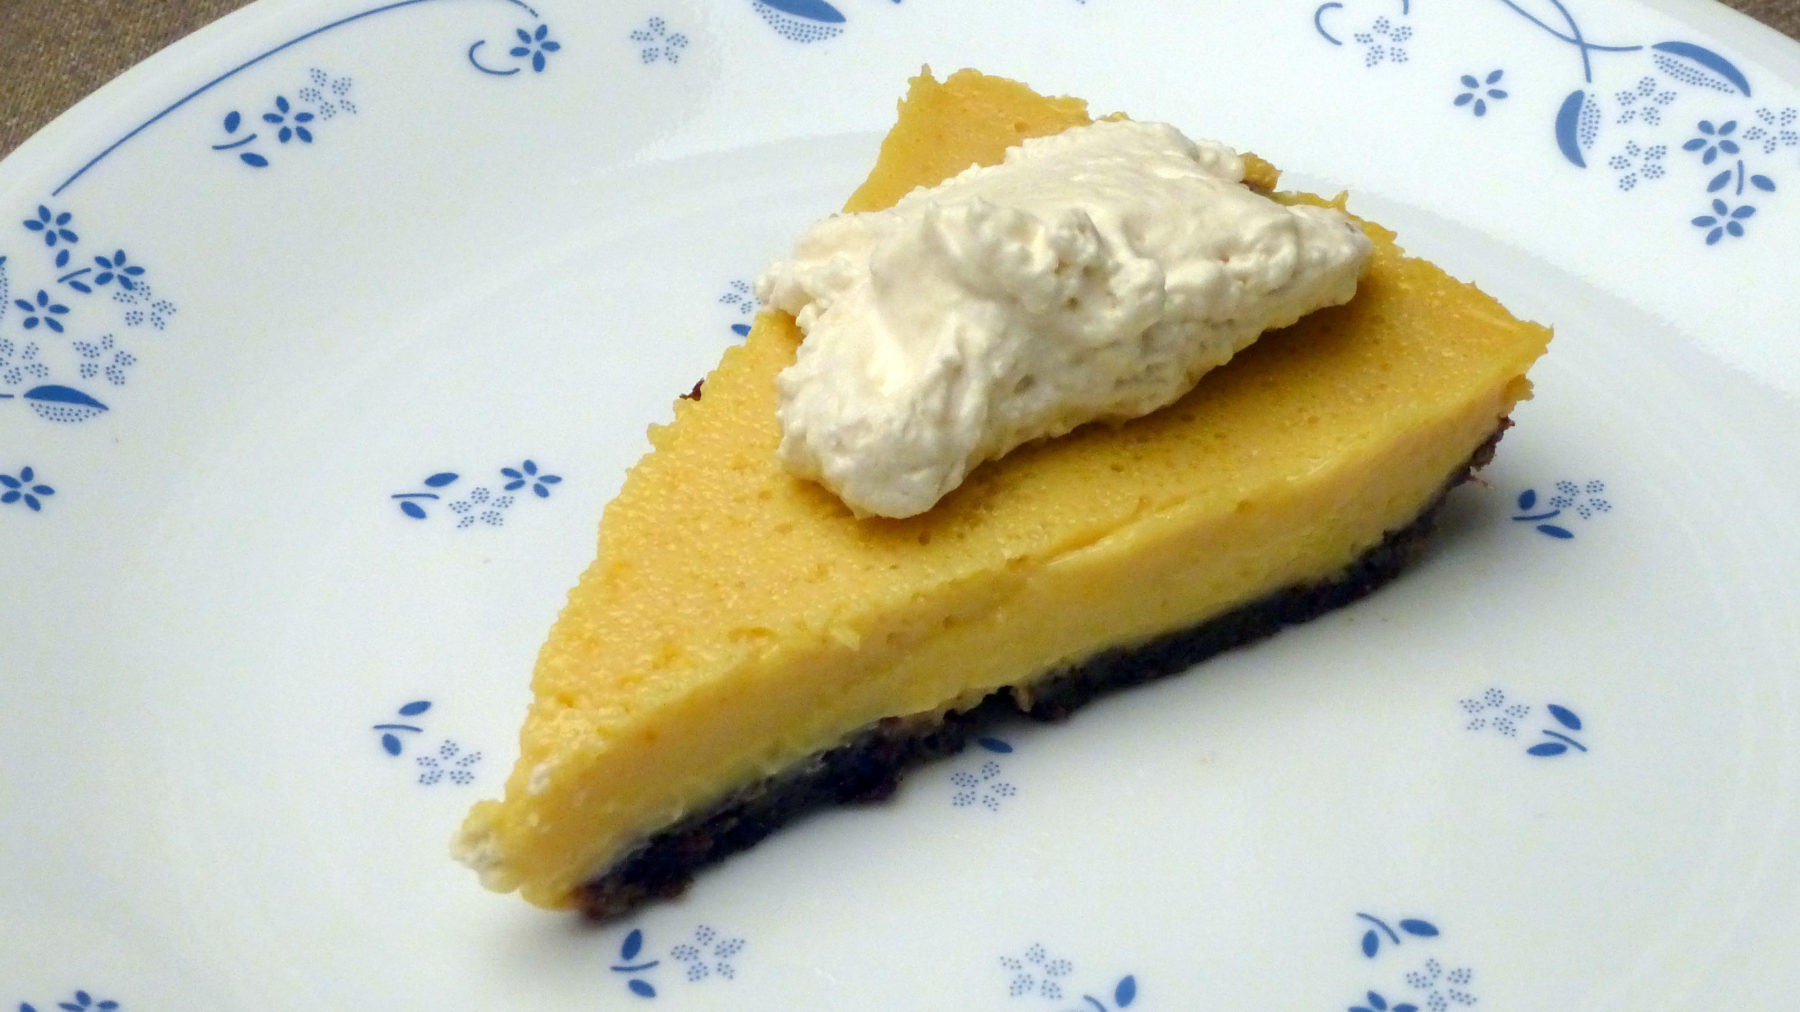 Meyer Lemon Cream Pie (Gluten Free) - Centex Cooks